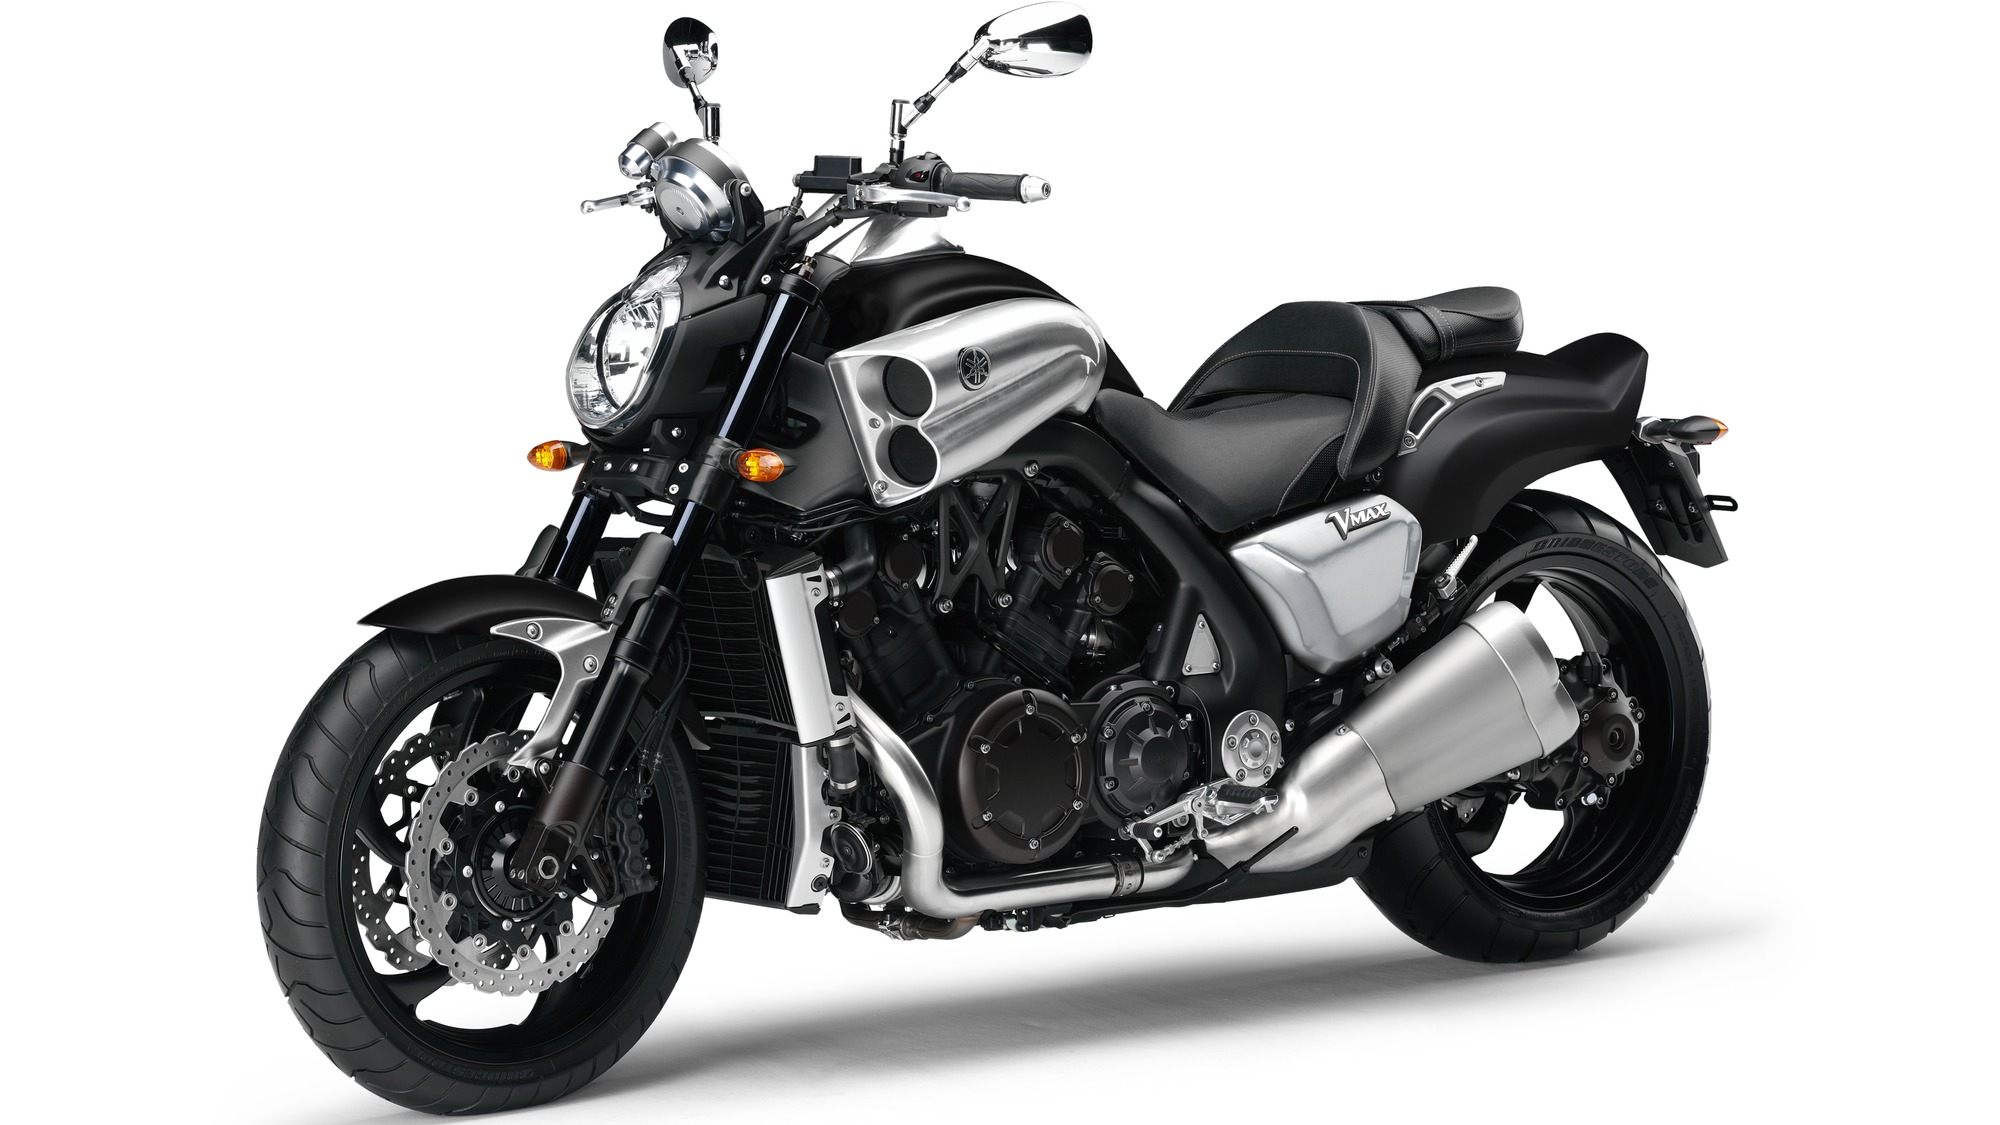 yamaha vmax 1700 pr sentation avis et fiche technique motodiapason. Black Bedroom Furniture Sets. Home Design Ideas